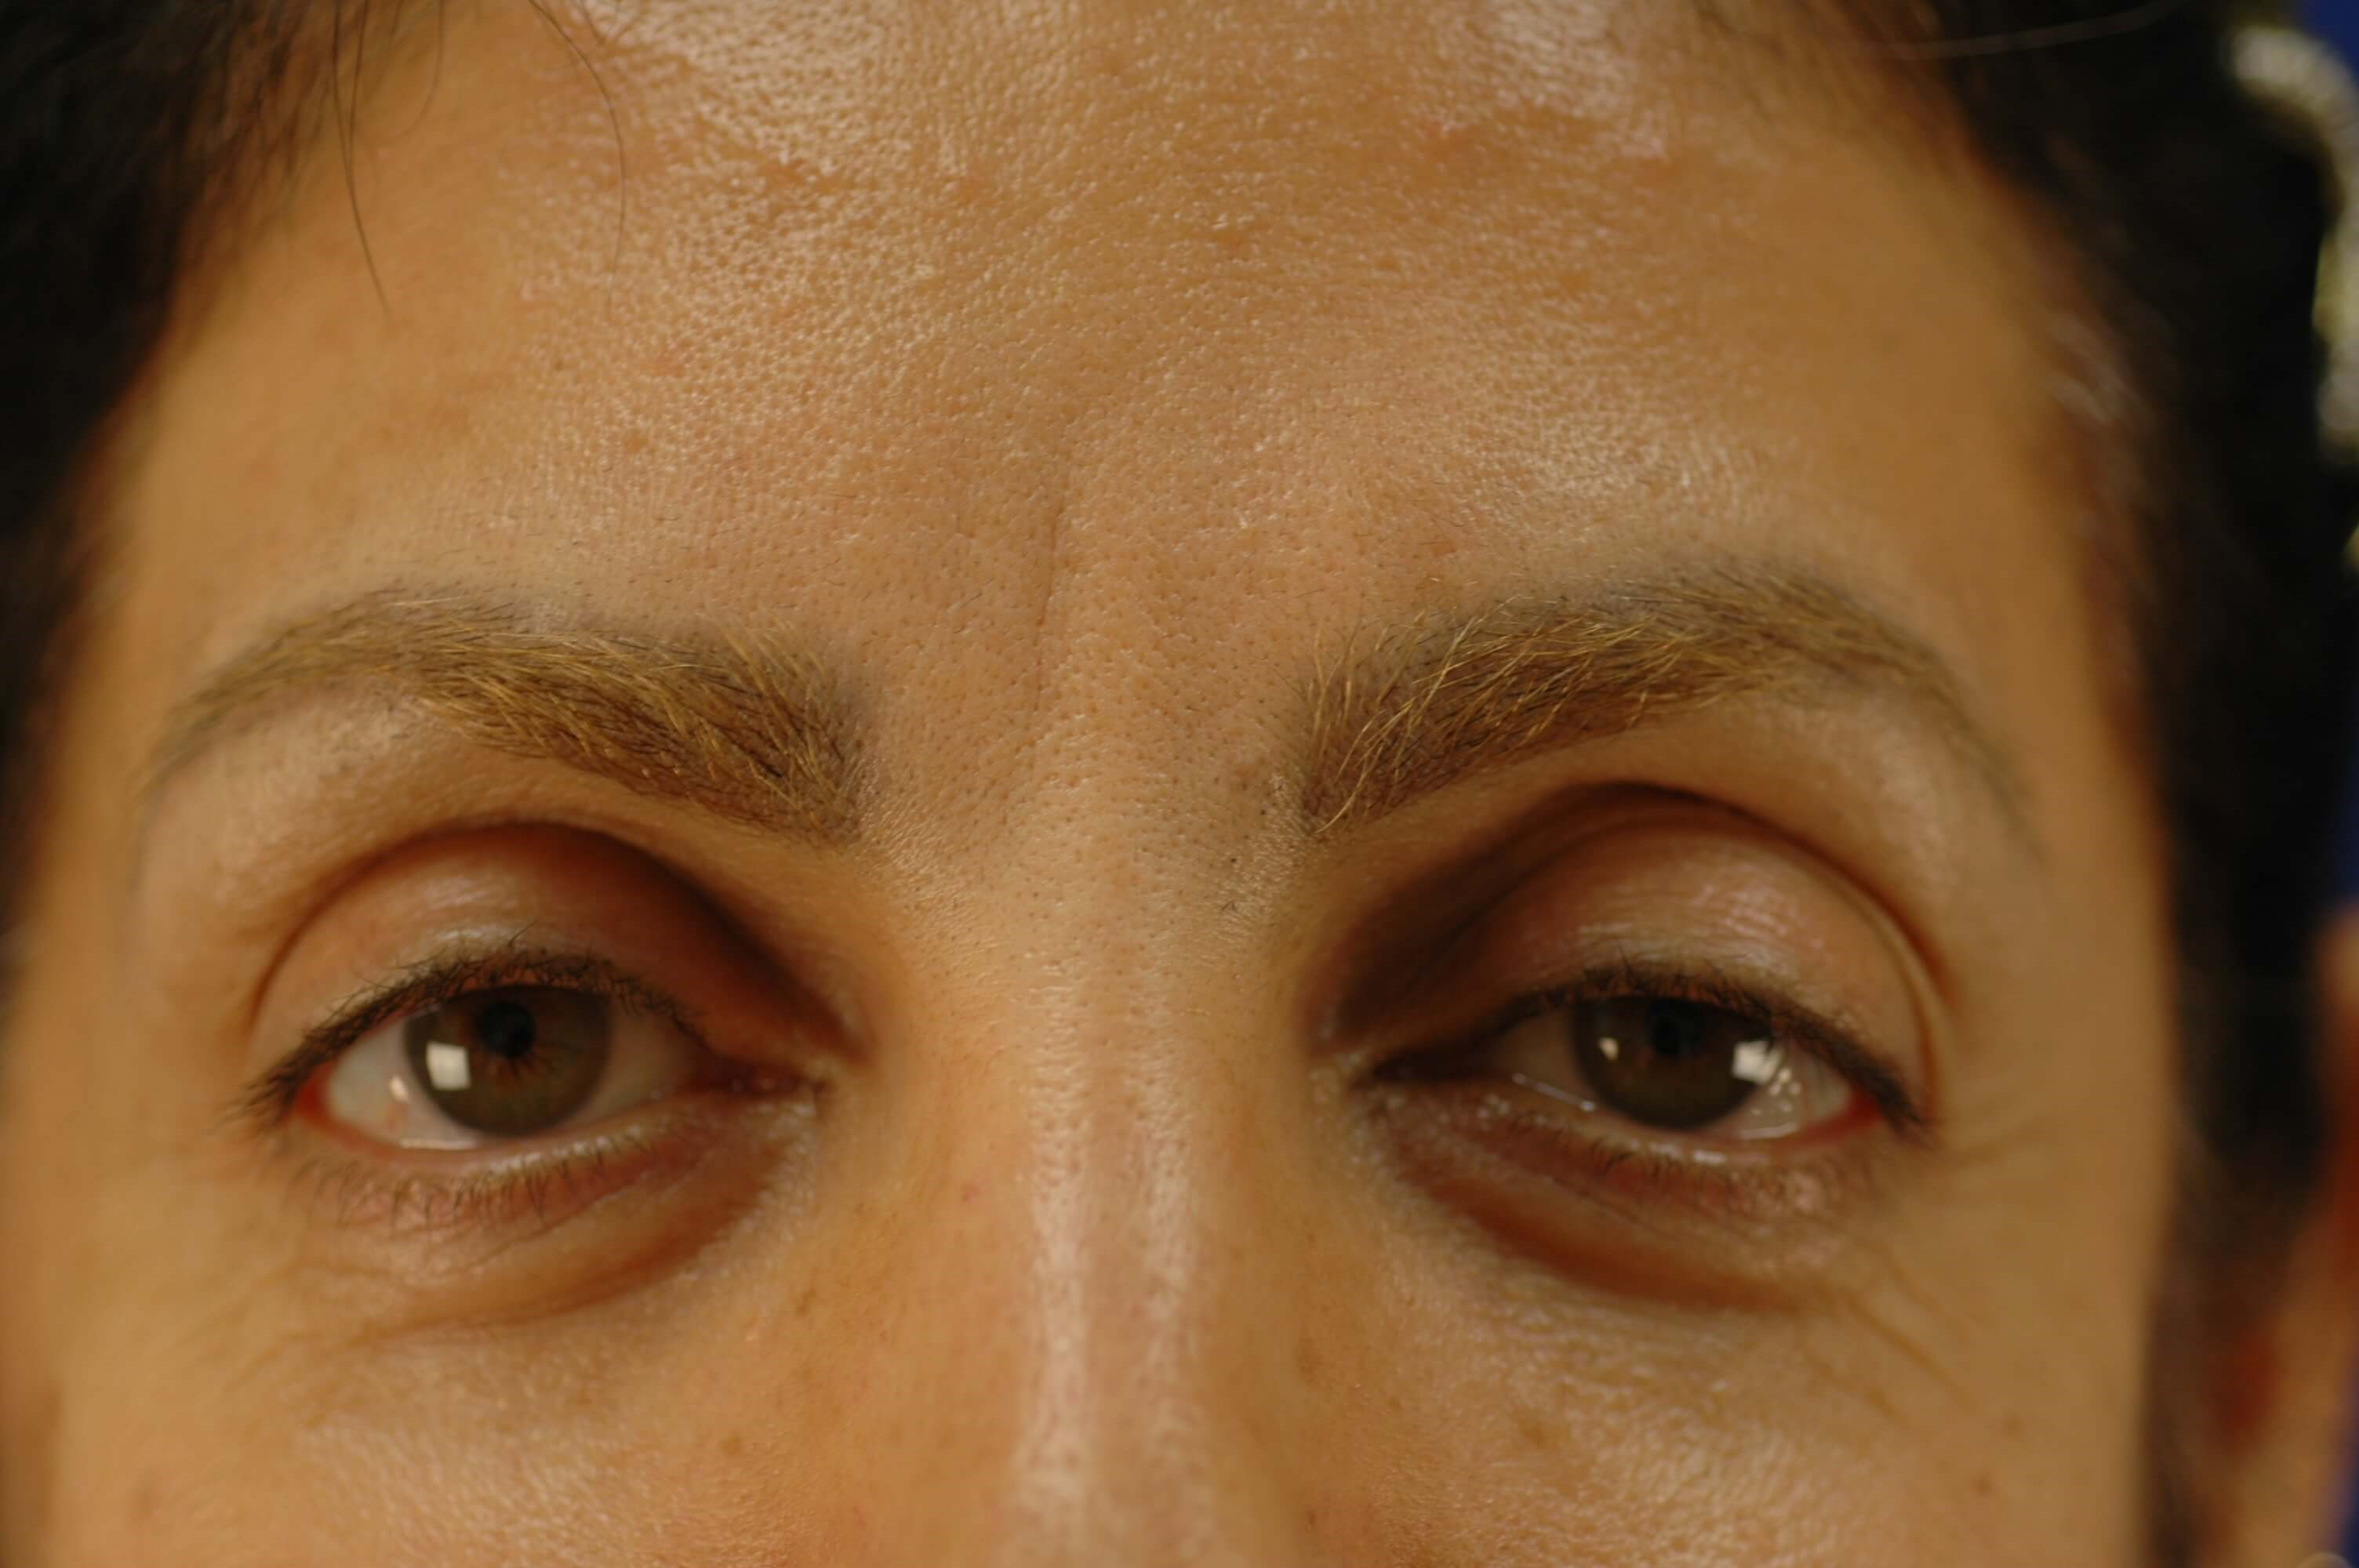 Newport Beach Brow/Nose After Front View